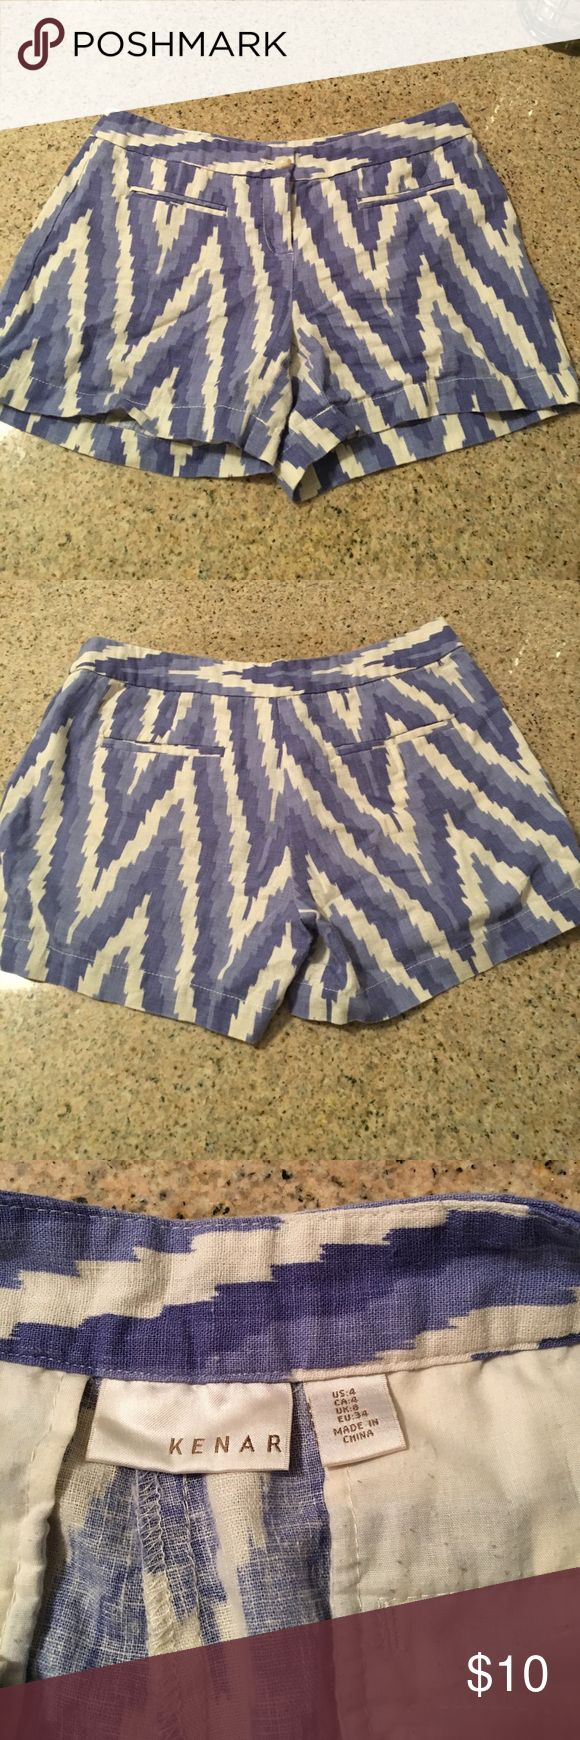 Kenar blue and white shorts Excellent used condition size 4! Kenar Shorts